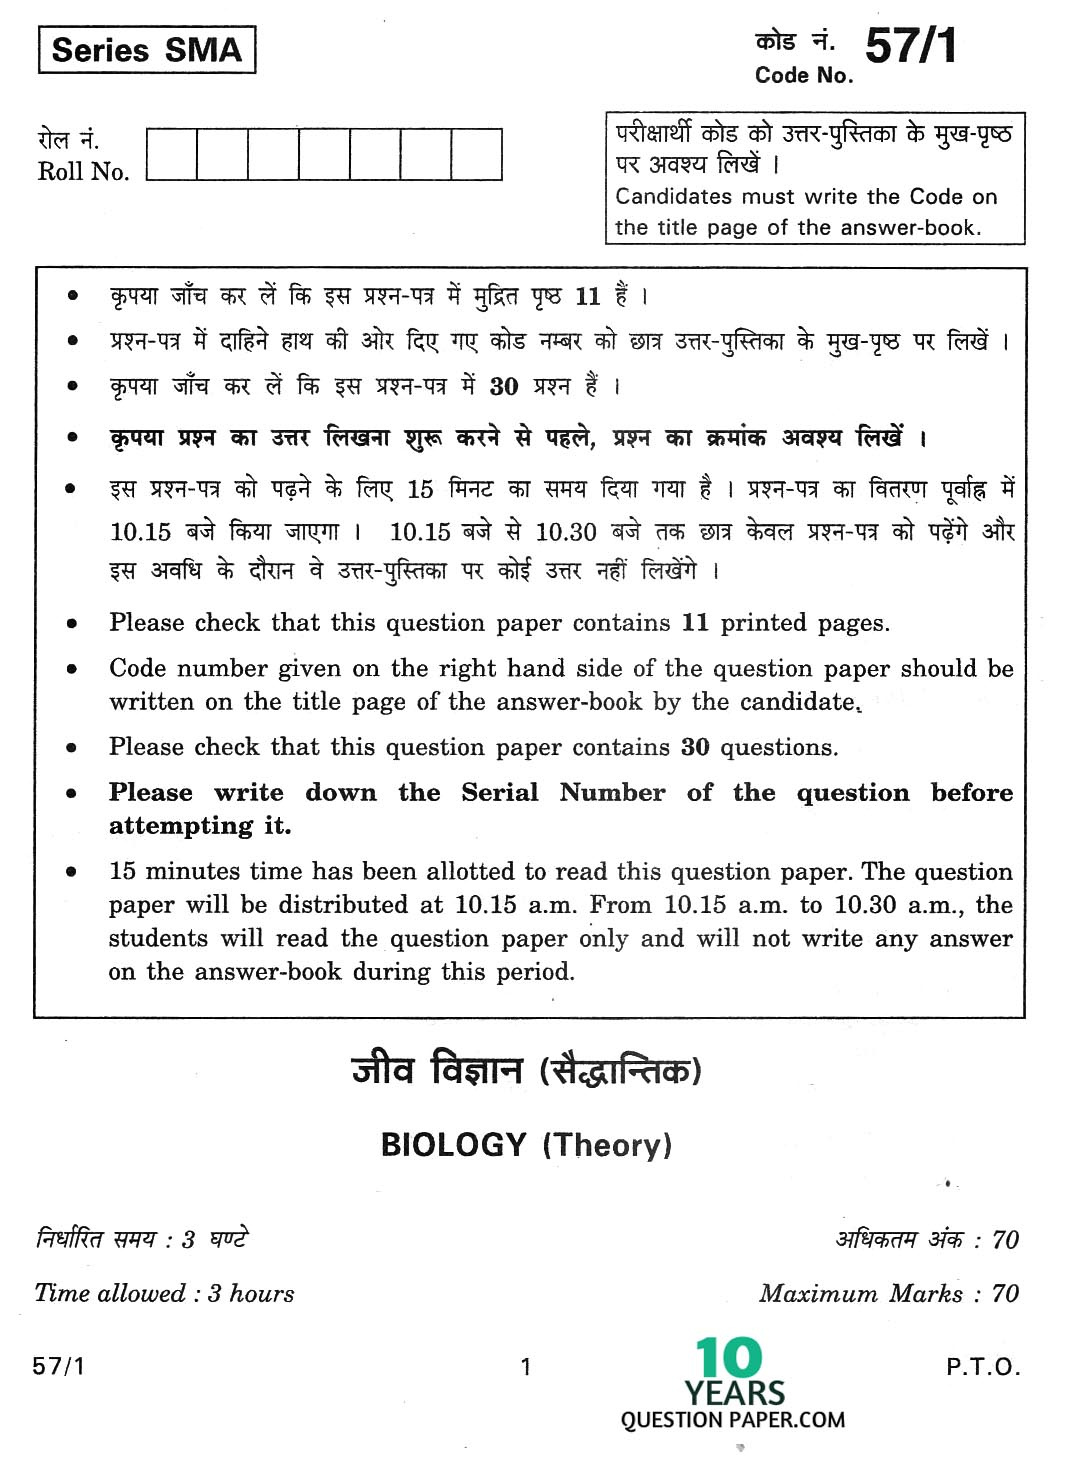 CBSE Class 12 Biology 2014 Question Paper